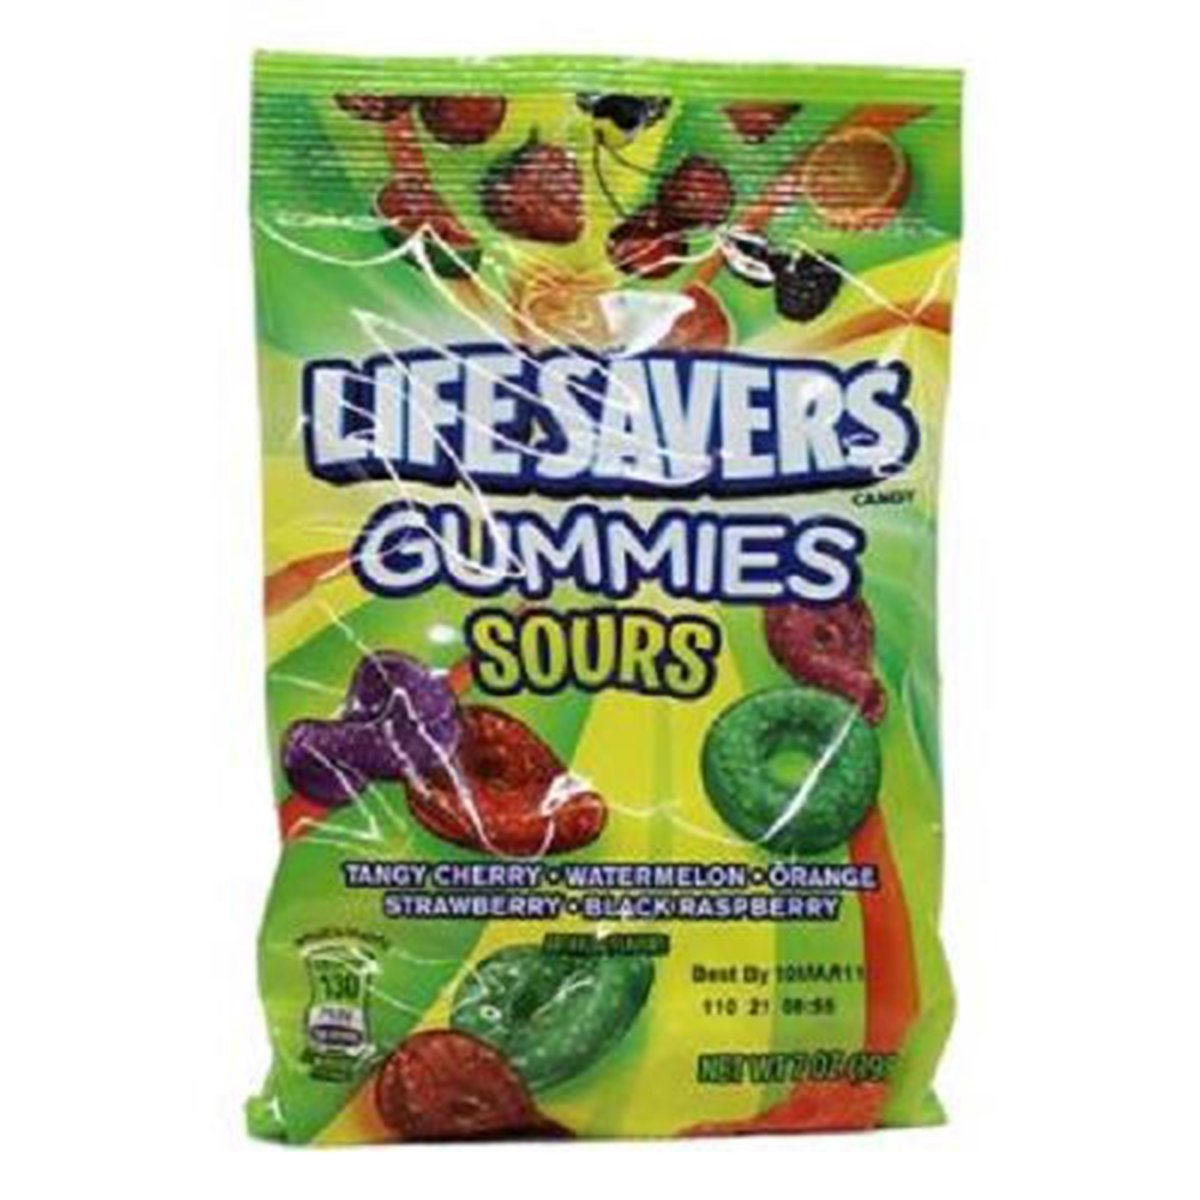 Lifesavers Gummies Sours Count 12 Courier shipping Las Vegas Mall free 7 Quantity oz Package 2 X